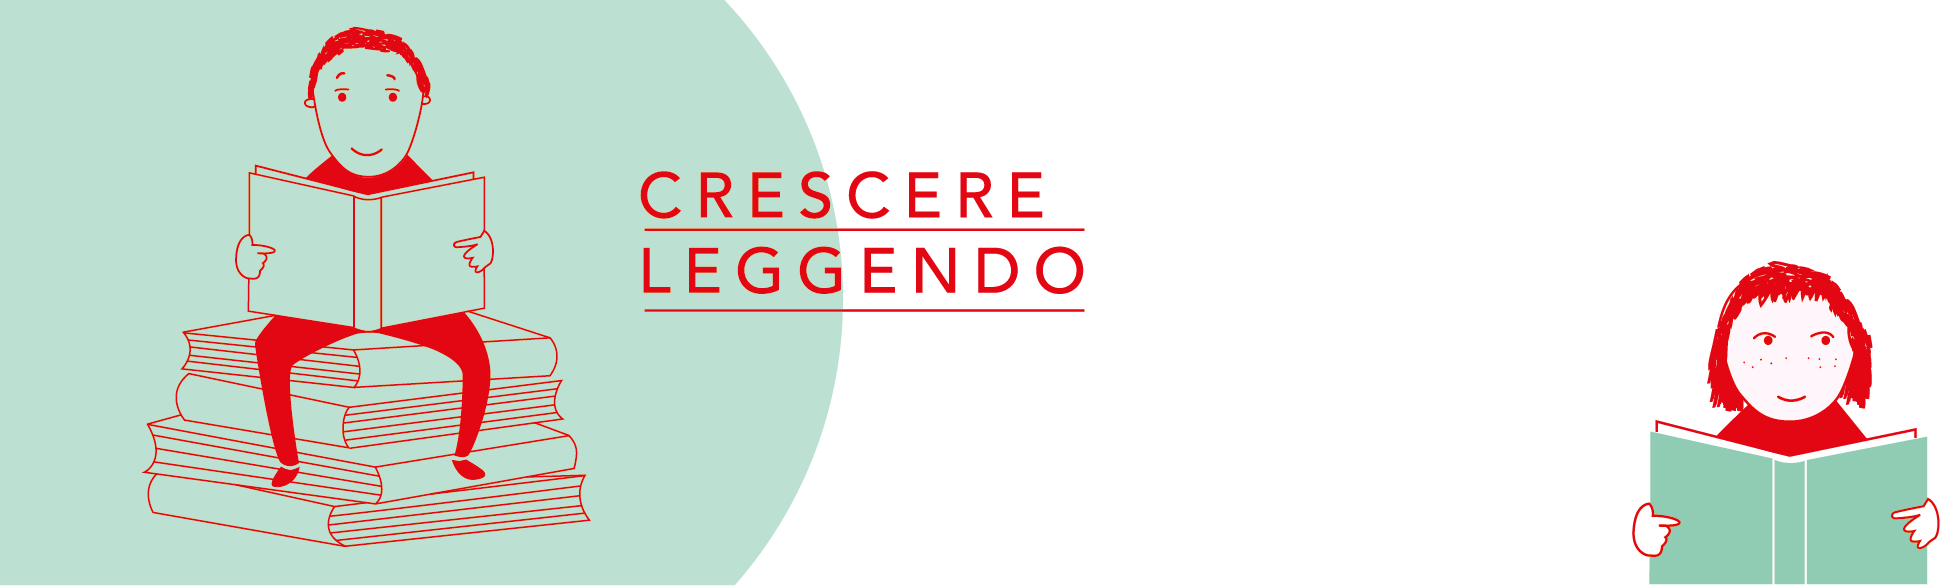 Crescere Leggendo